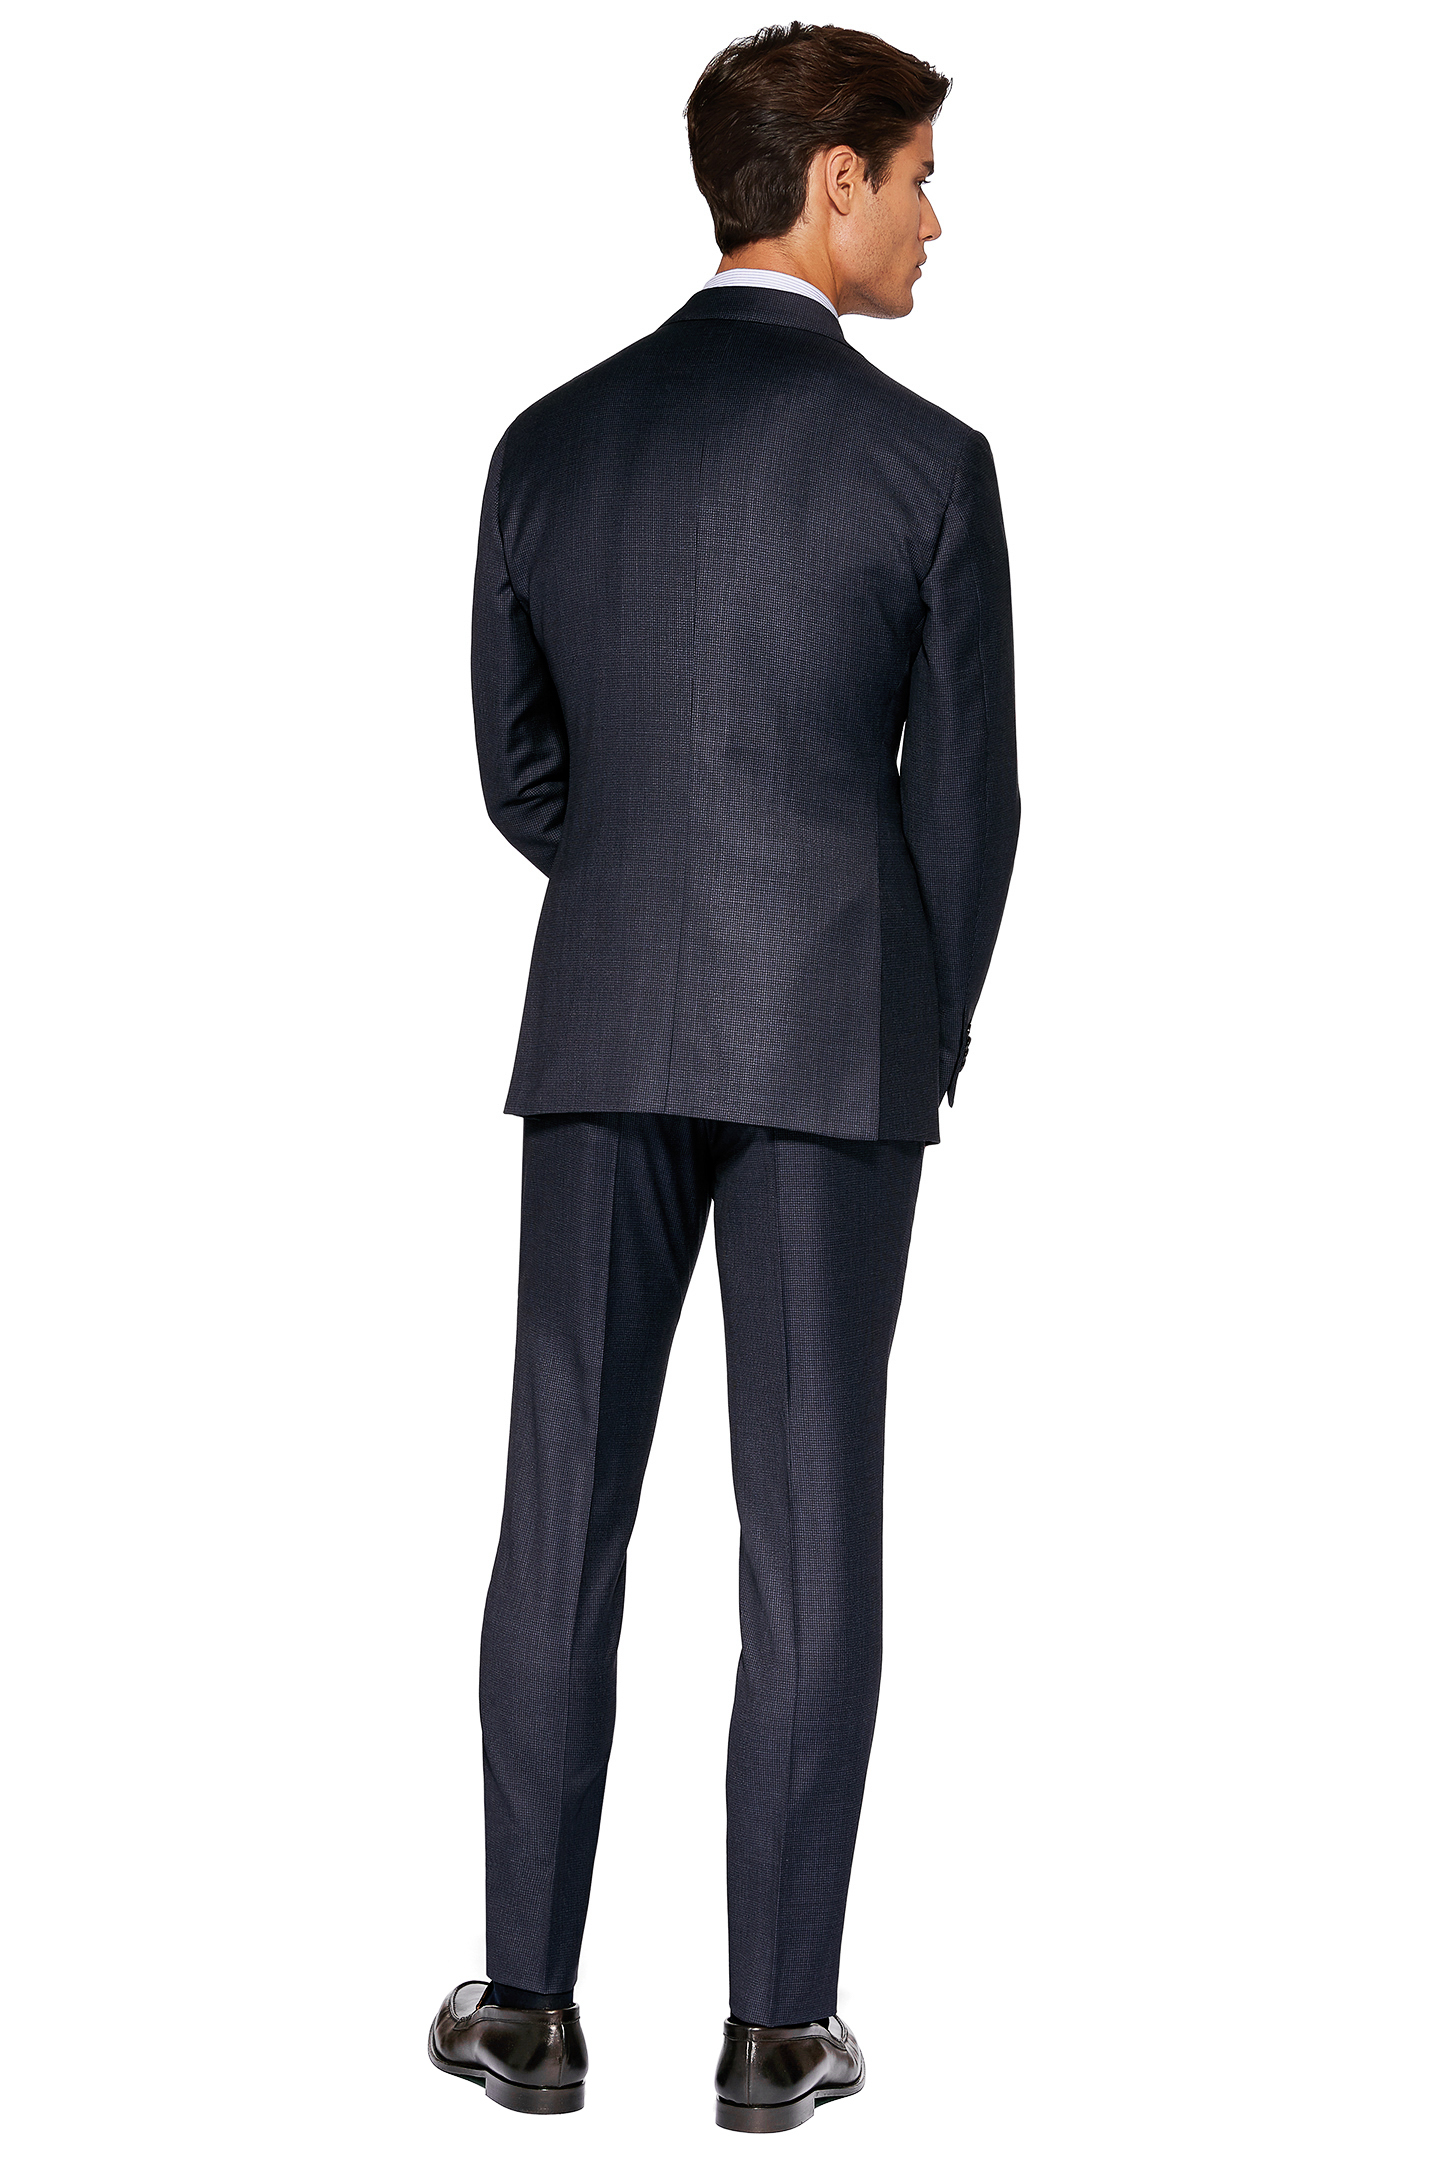 3aa52ba534 ... HOUNDSTOOTH SUIT - SUPER 130 WOOL - MADE IN ITALY